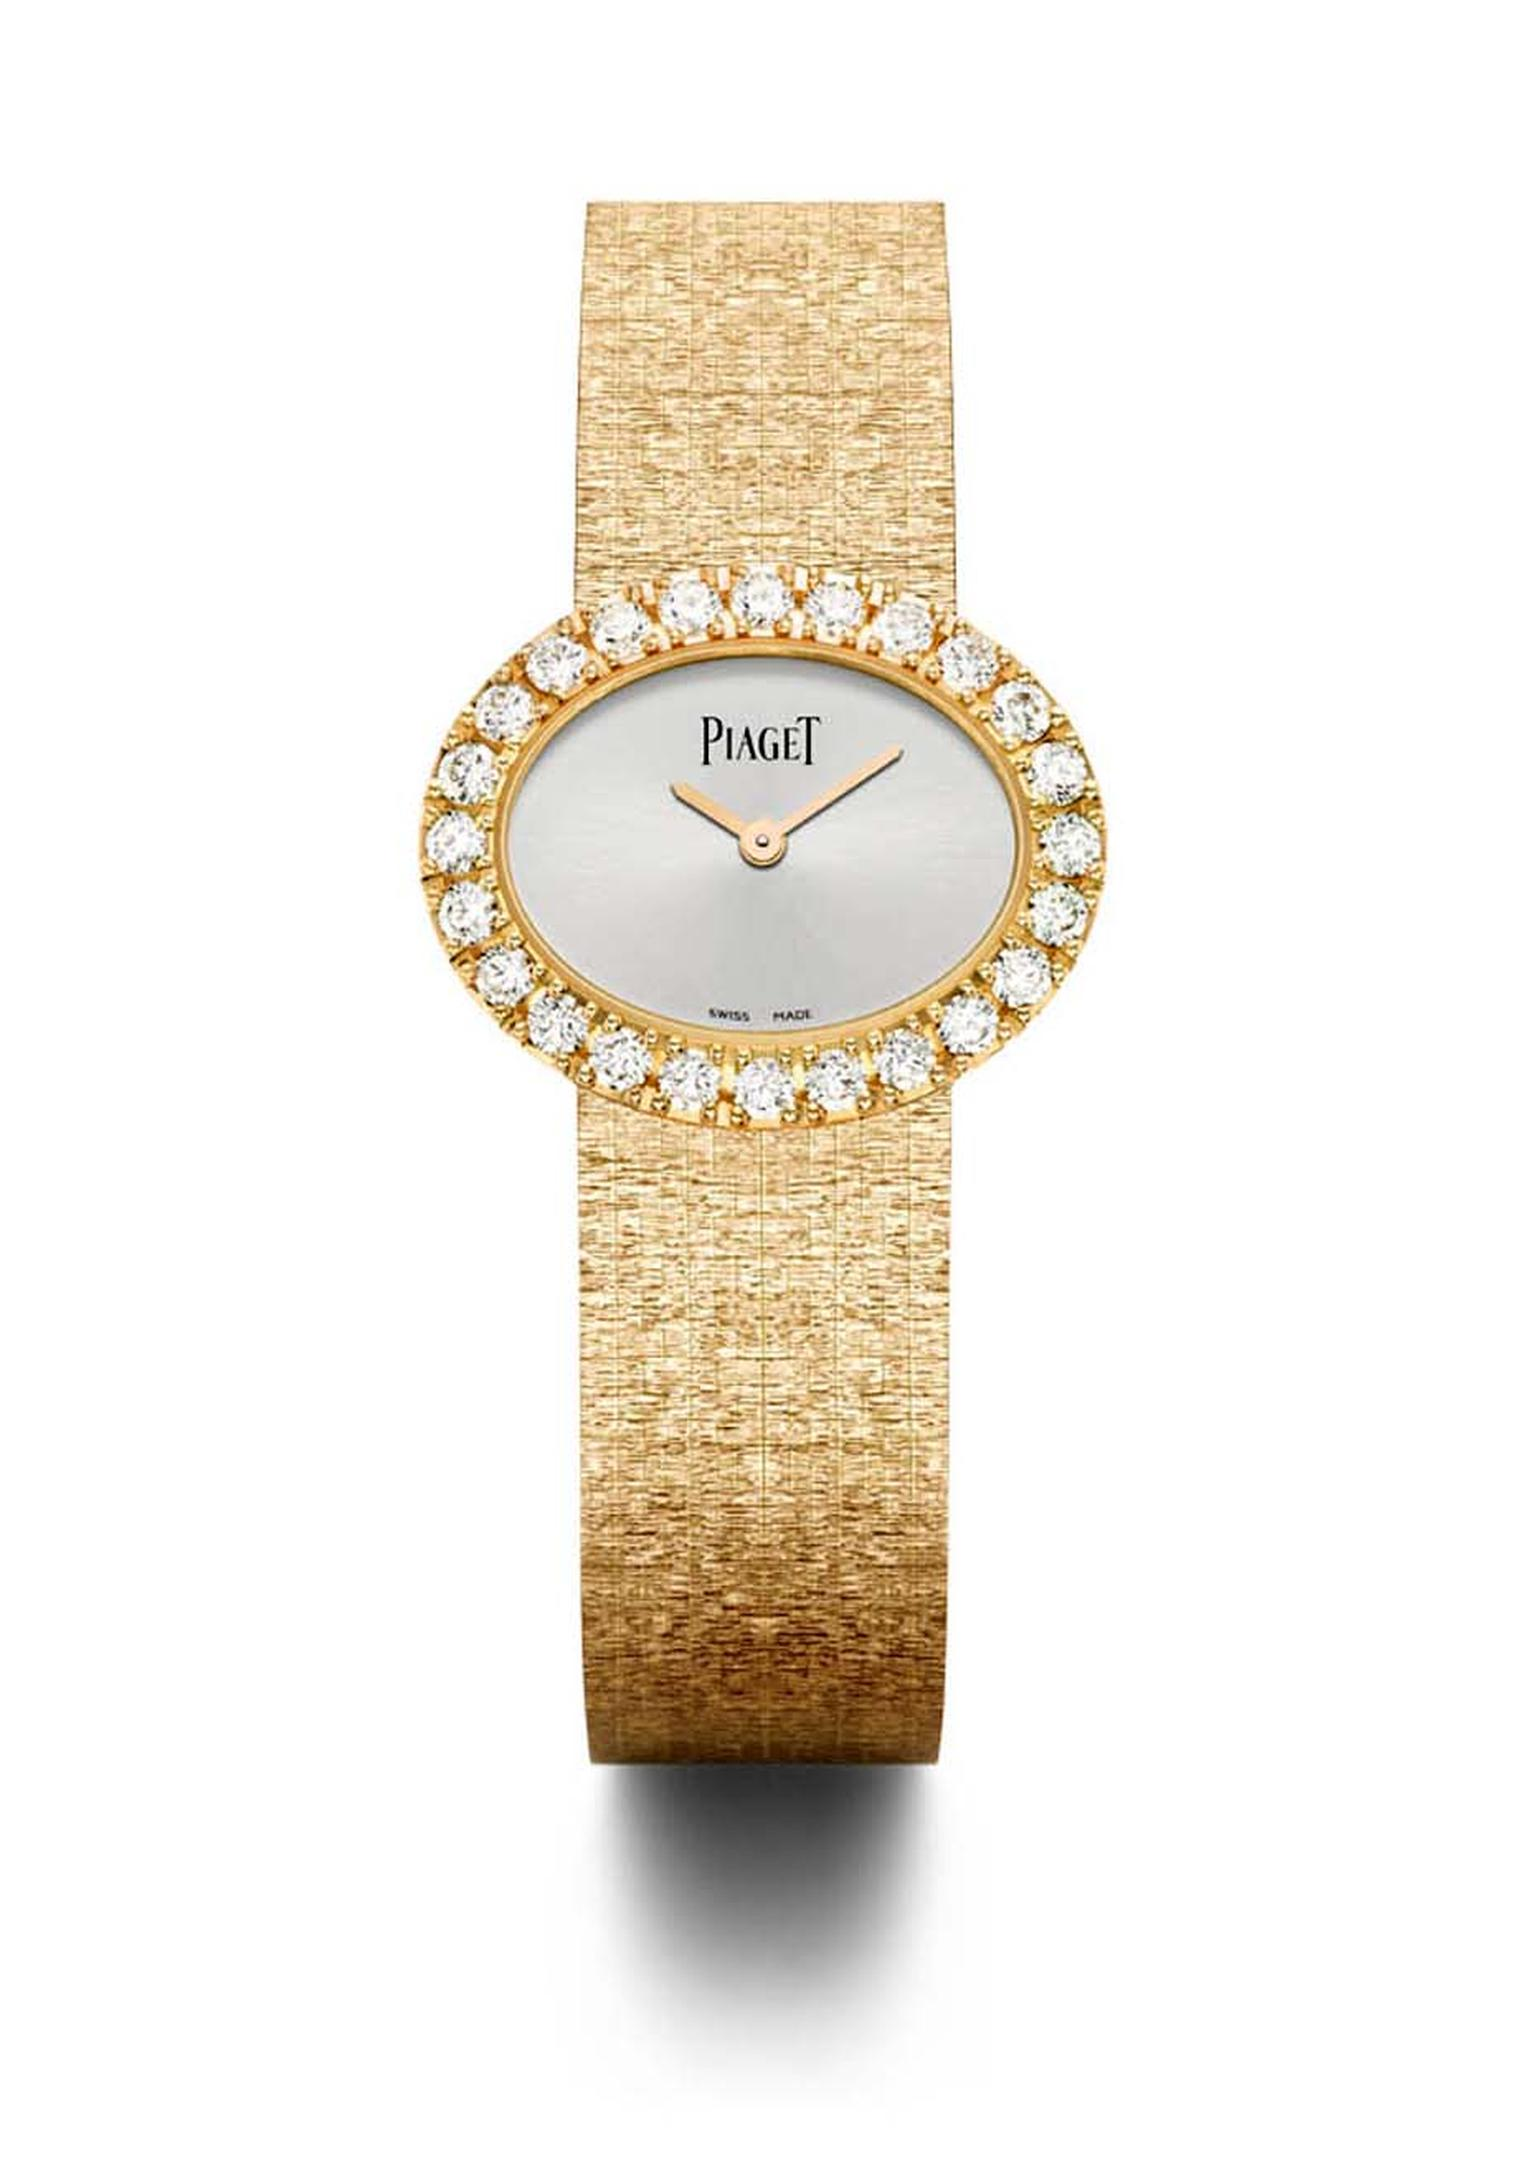 The Piaget watch gold bracelet is a work of goldsmithing prowess made to resemble gold textured fabric, which shimmers like a silk ribbon on the wrist.